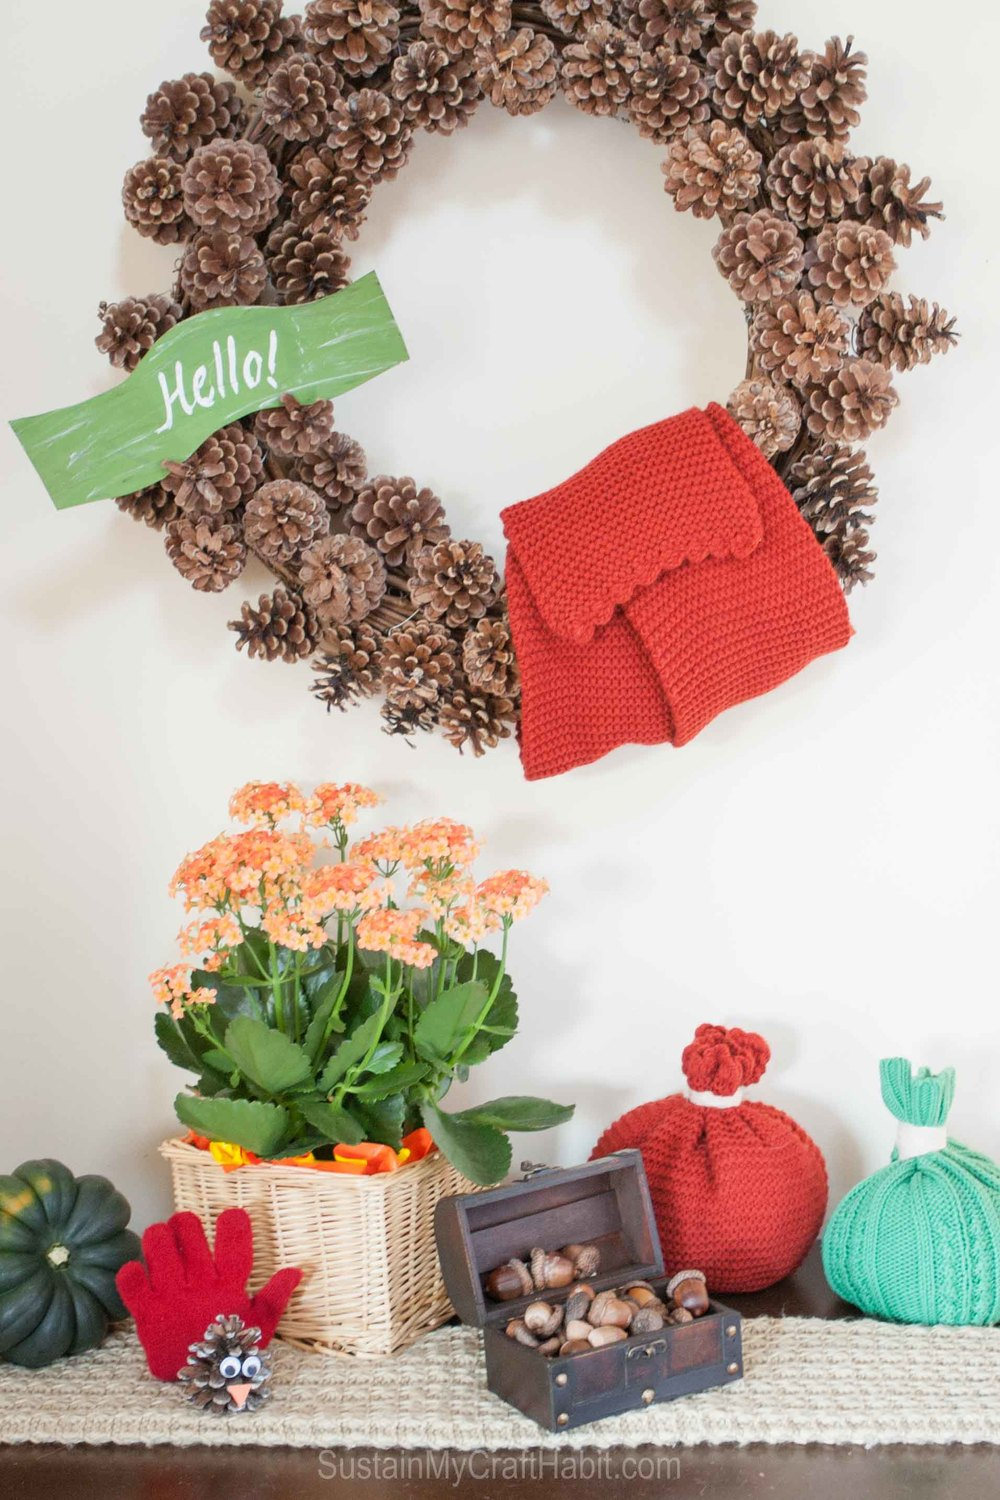 Toque Pumpkins and Glove Turkeys, Oh My! Extra gloves, hats and scarves can be used to create a whimsical and fun fall or Thanksgiving vignette for free! Use what you already have on hand to decorate your home. Click through to see the making-of videos for this DIY decor idea. SUSTAIN MY CRAFT HABIT